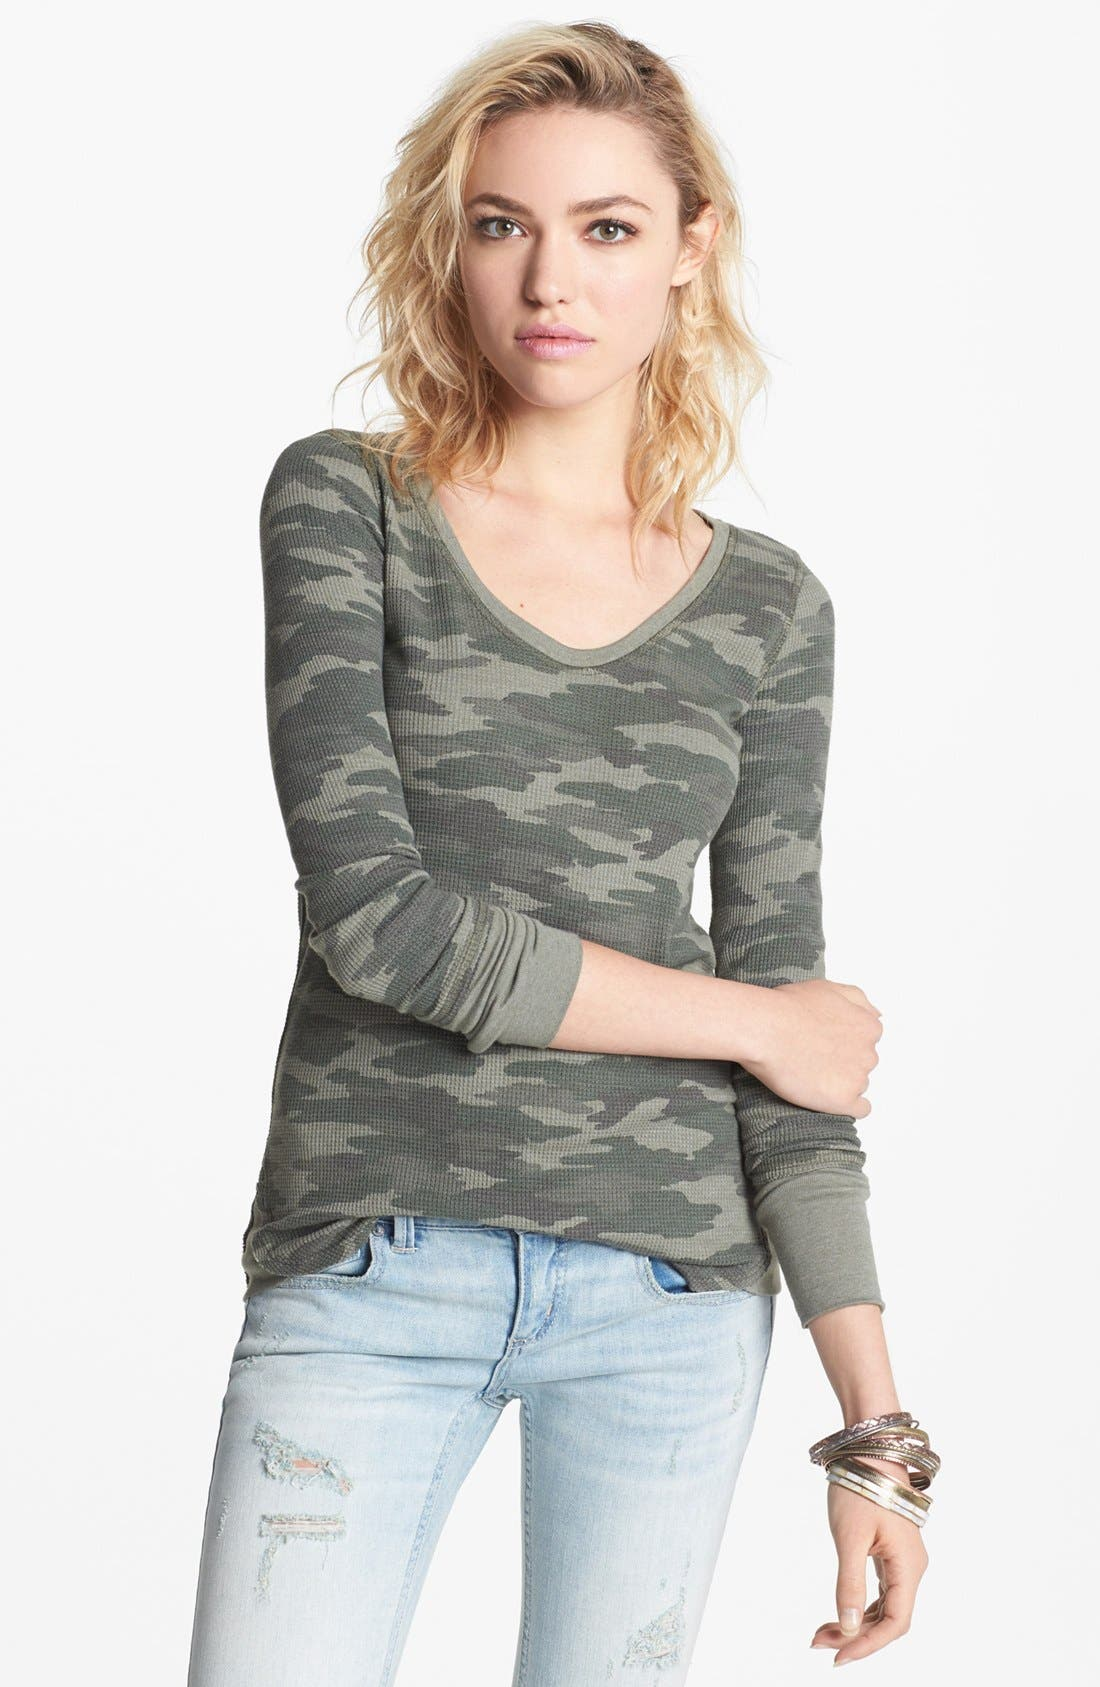 Alternate Image 1 Selected - Free People Camo Print Thermal Tee